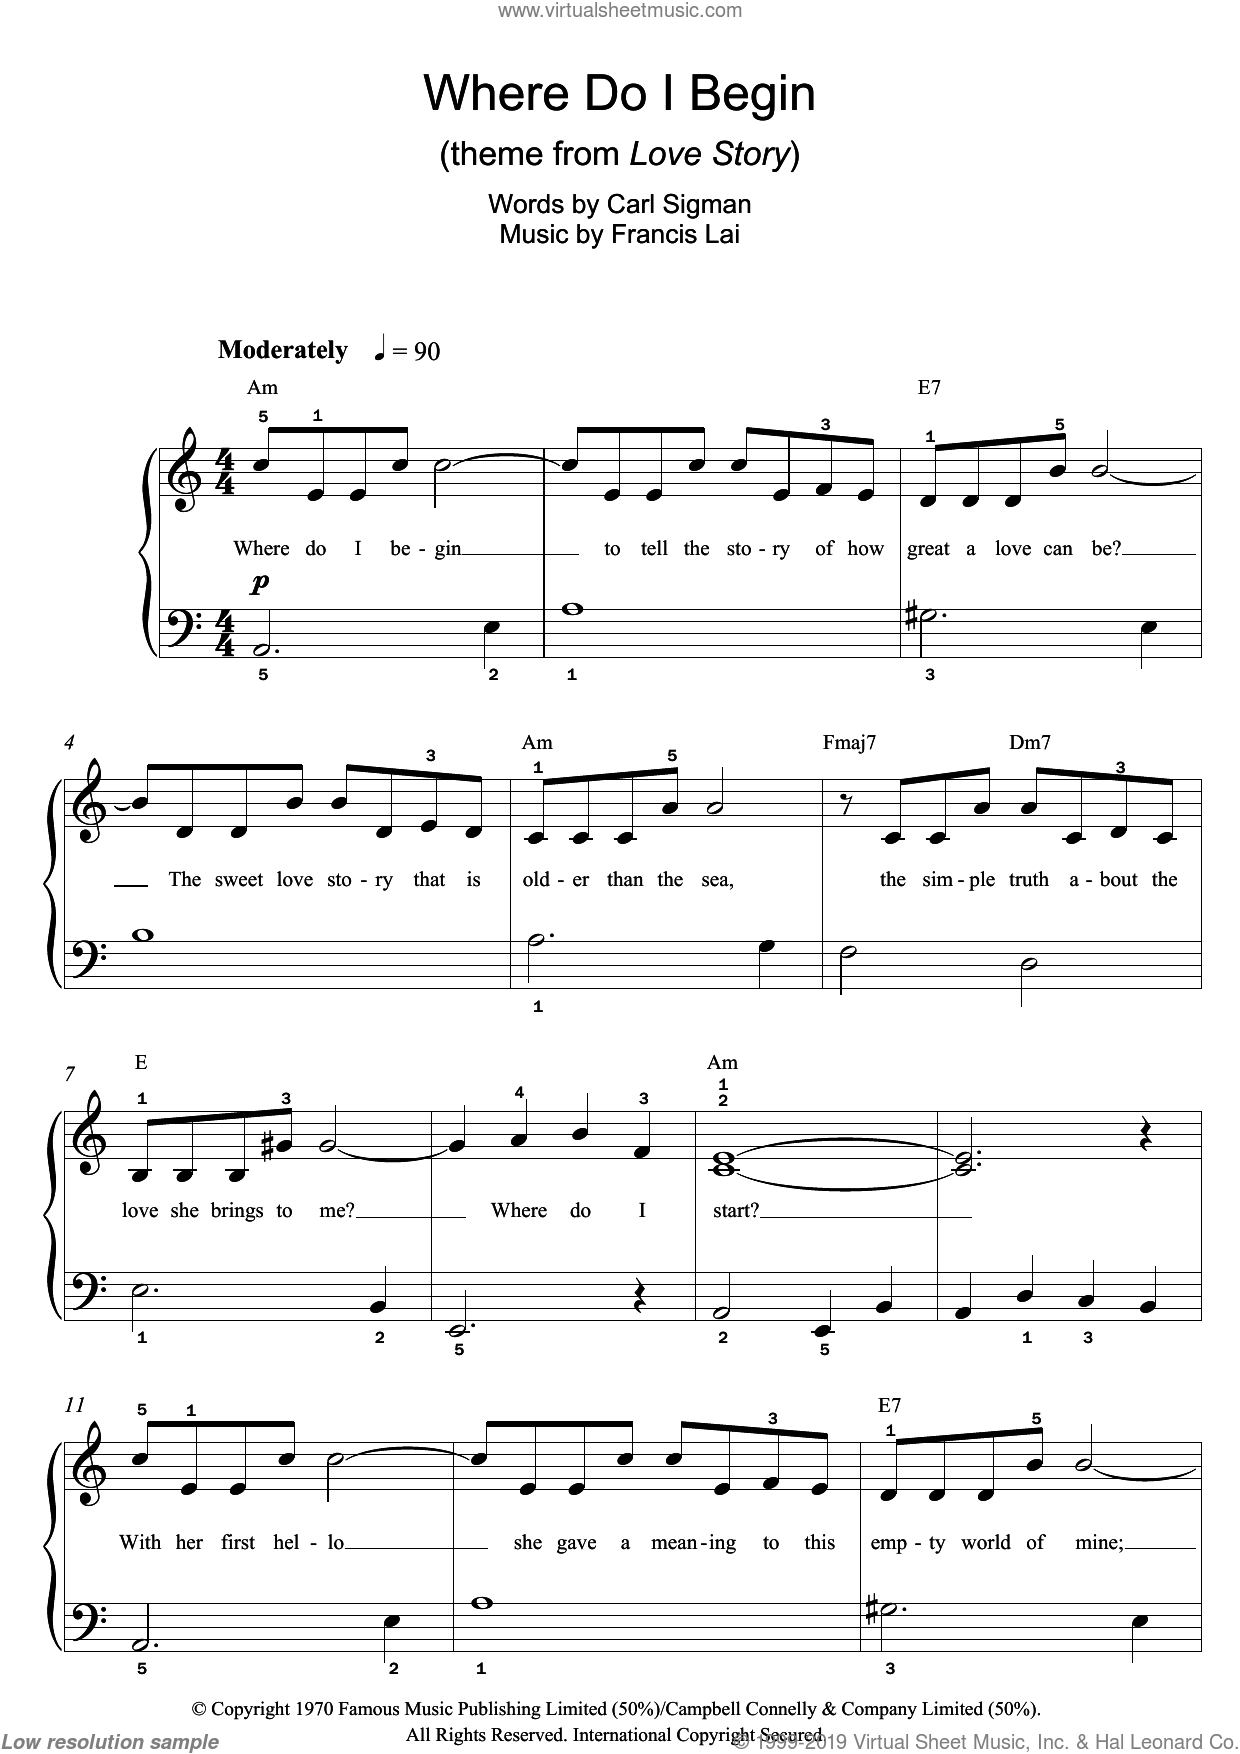 Where Do I Begin sheet music for piano solo by Andy Williams, Francis Lai and Carl Sigman, easy skill level